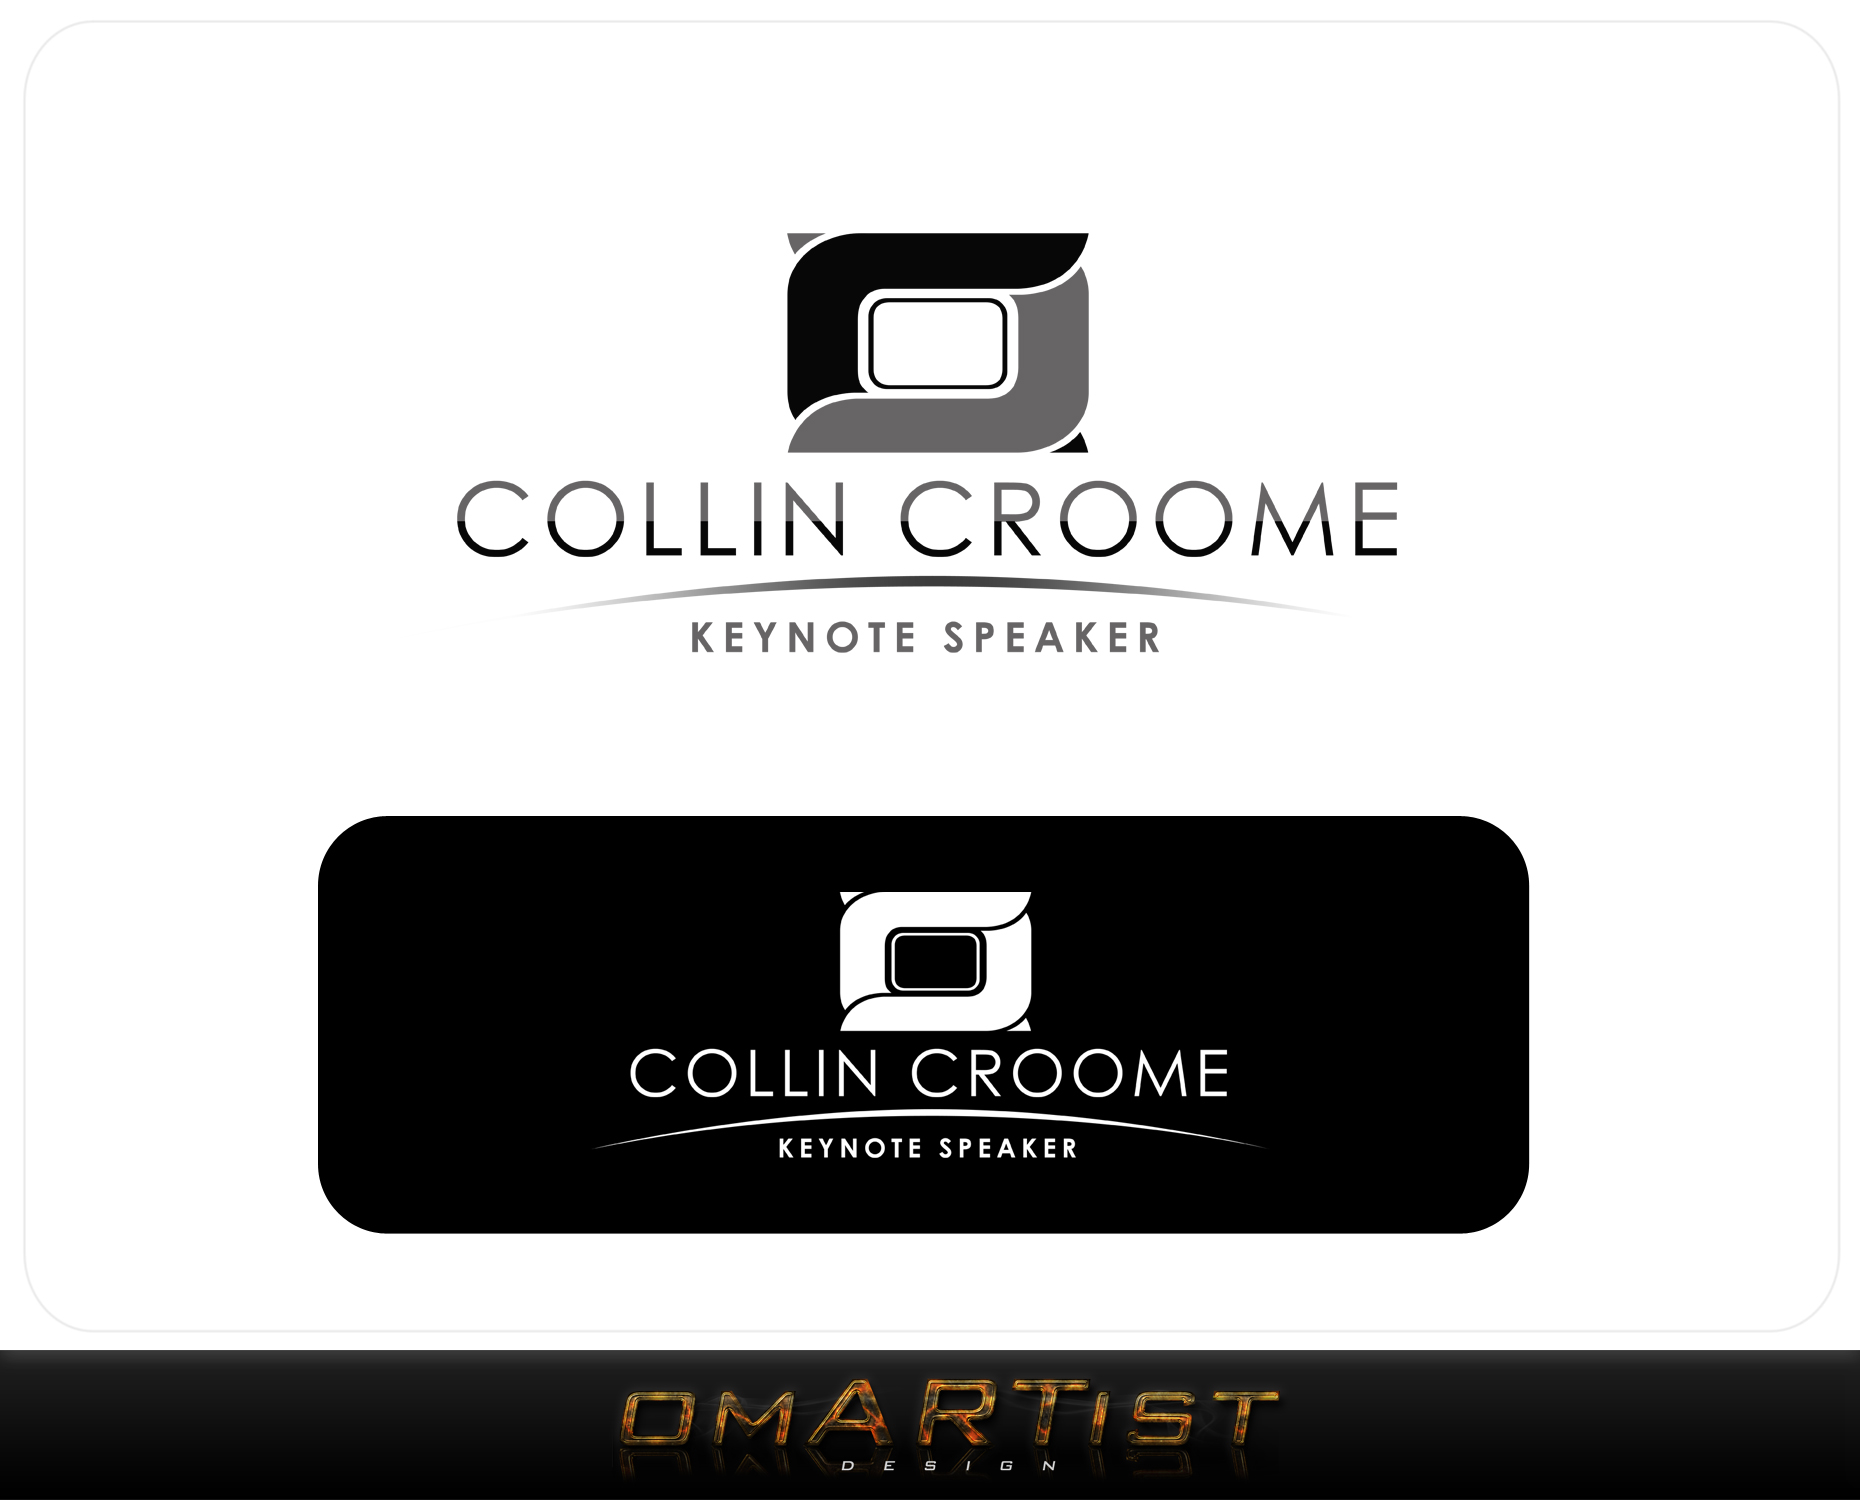 Logo Design by omARTist - Entry No. 256 in the Logo Design Contest Modern Logo Design for Collin Croome.